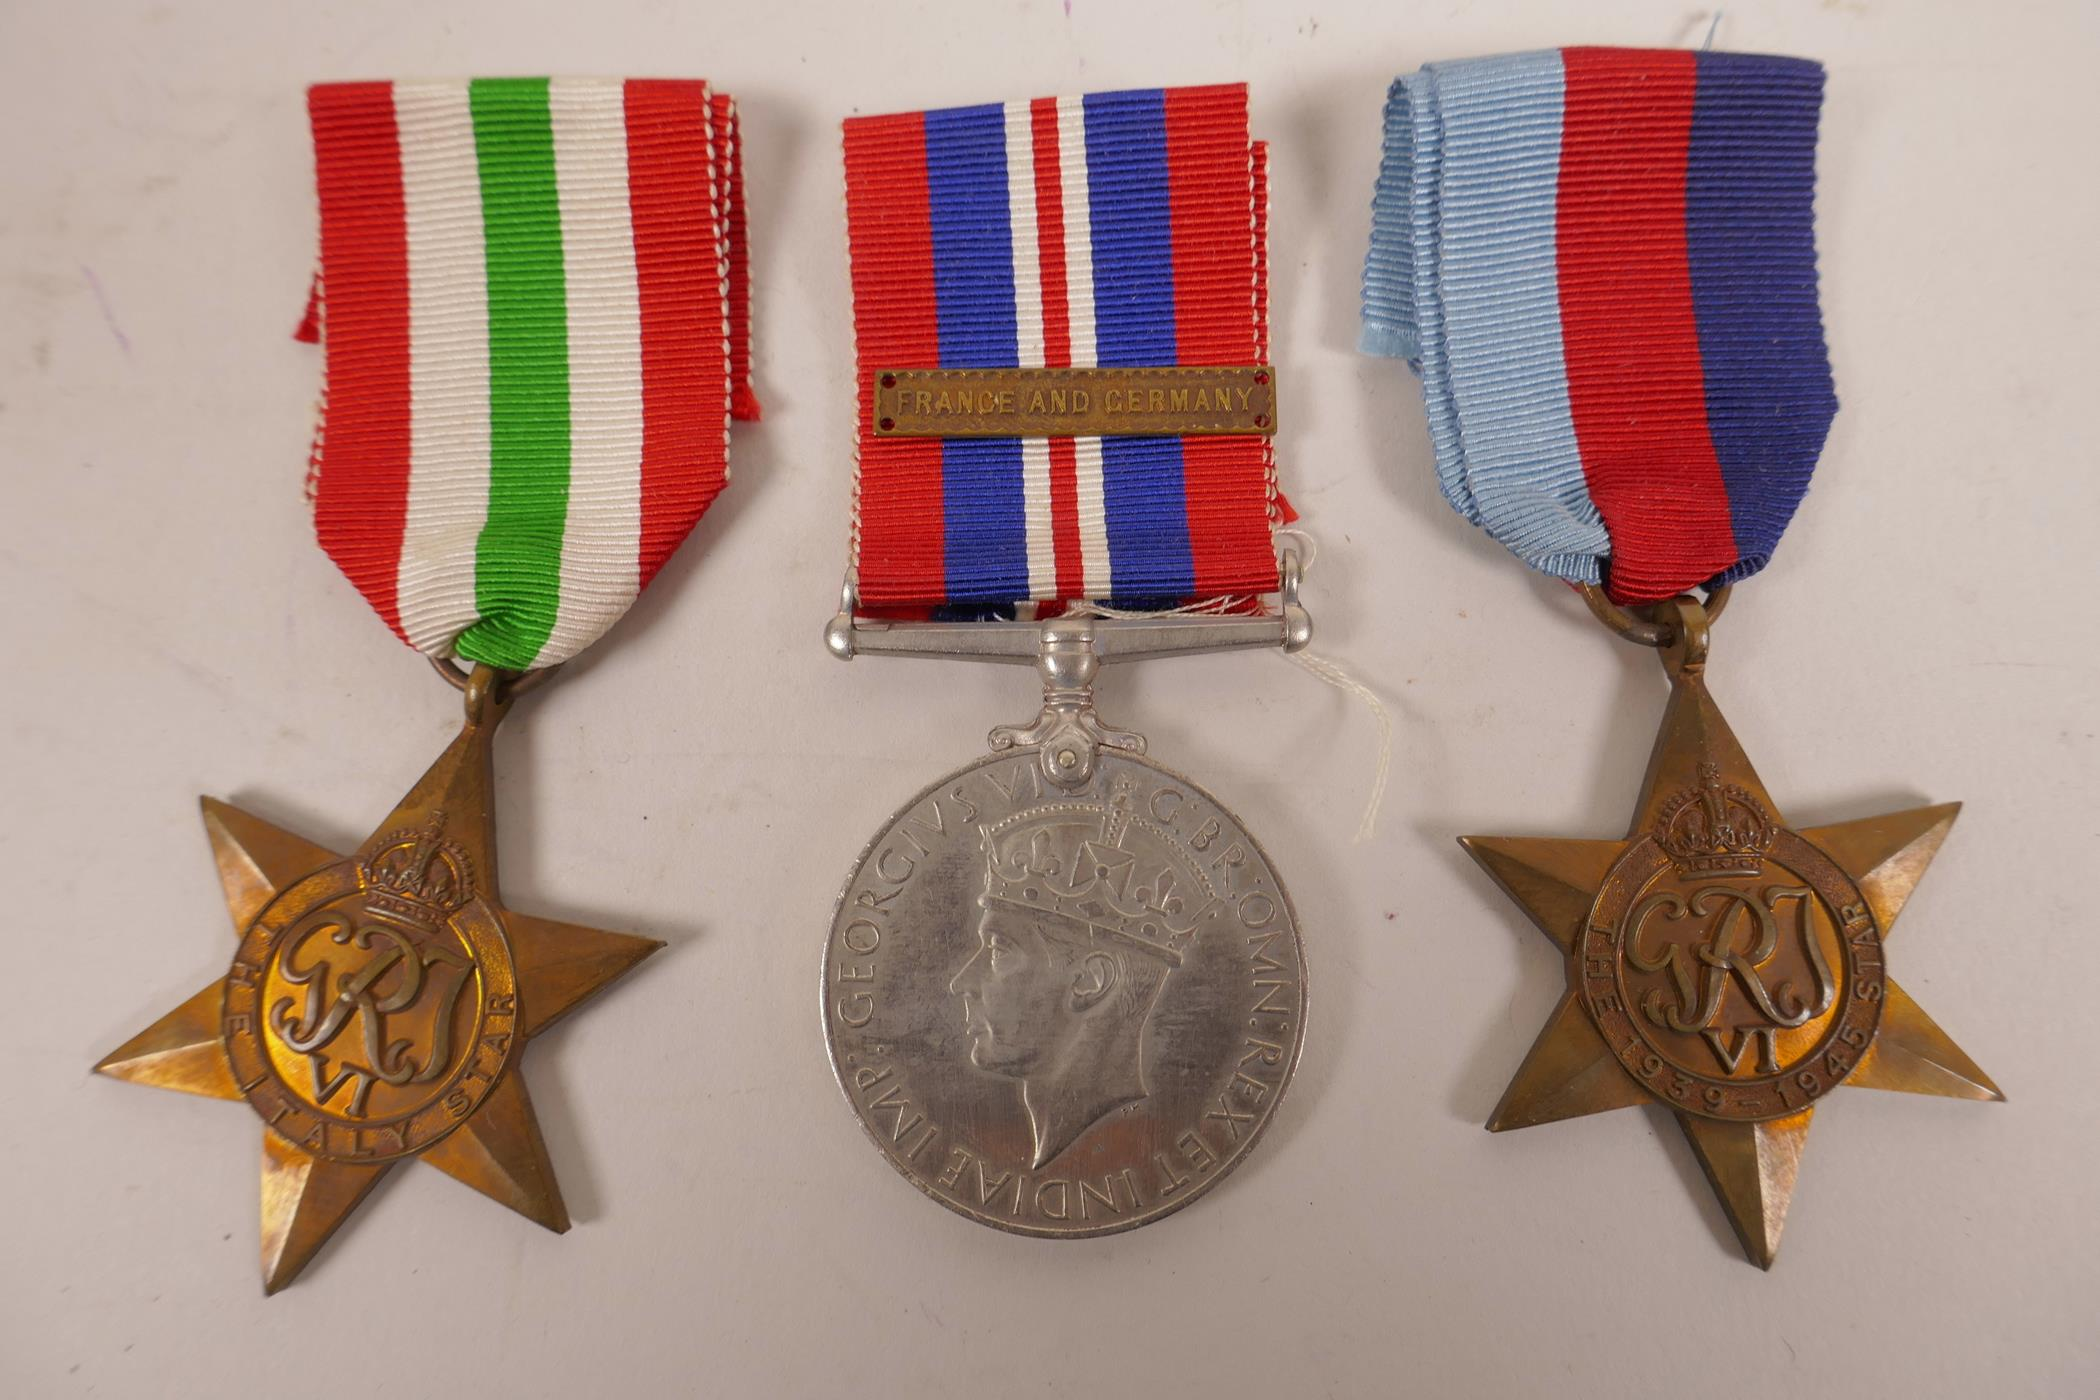 Lot 22 - Six WWII 1939-45 war medals; 'The Atlantic Star', 'The Italy Star', 'The Burma Star', 'The Africa